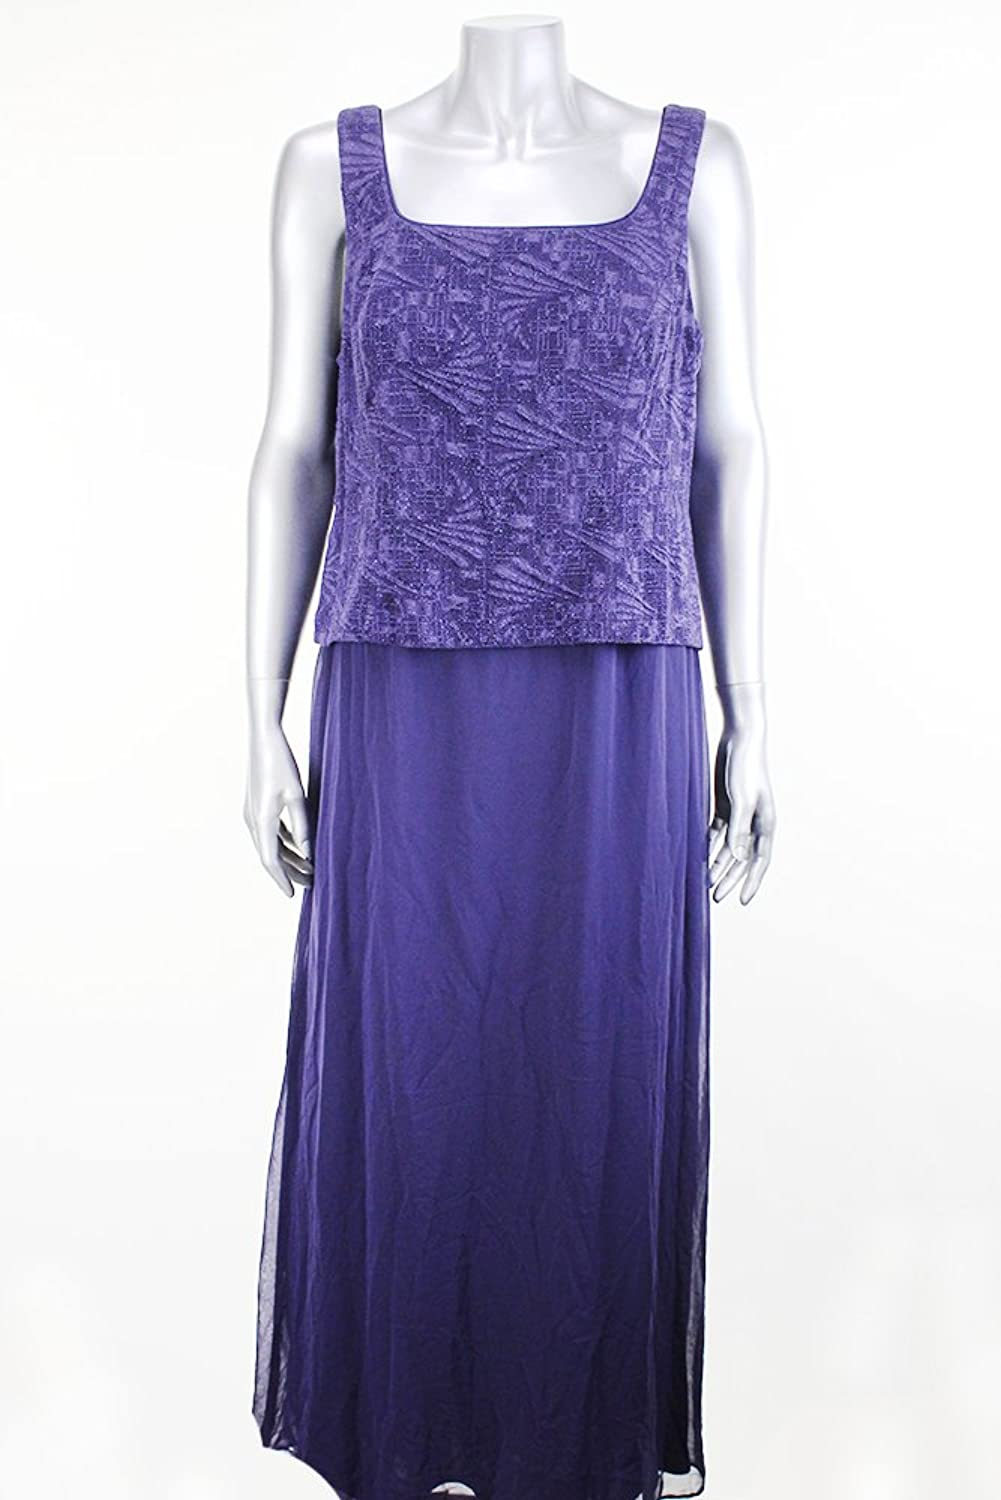 Alex Evenings Petite Purple Sleeveless Gown Msrp